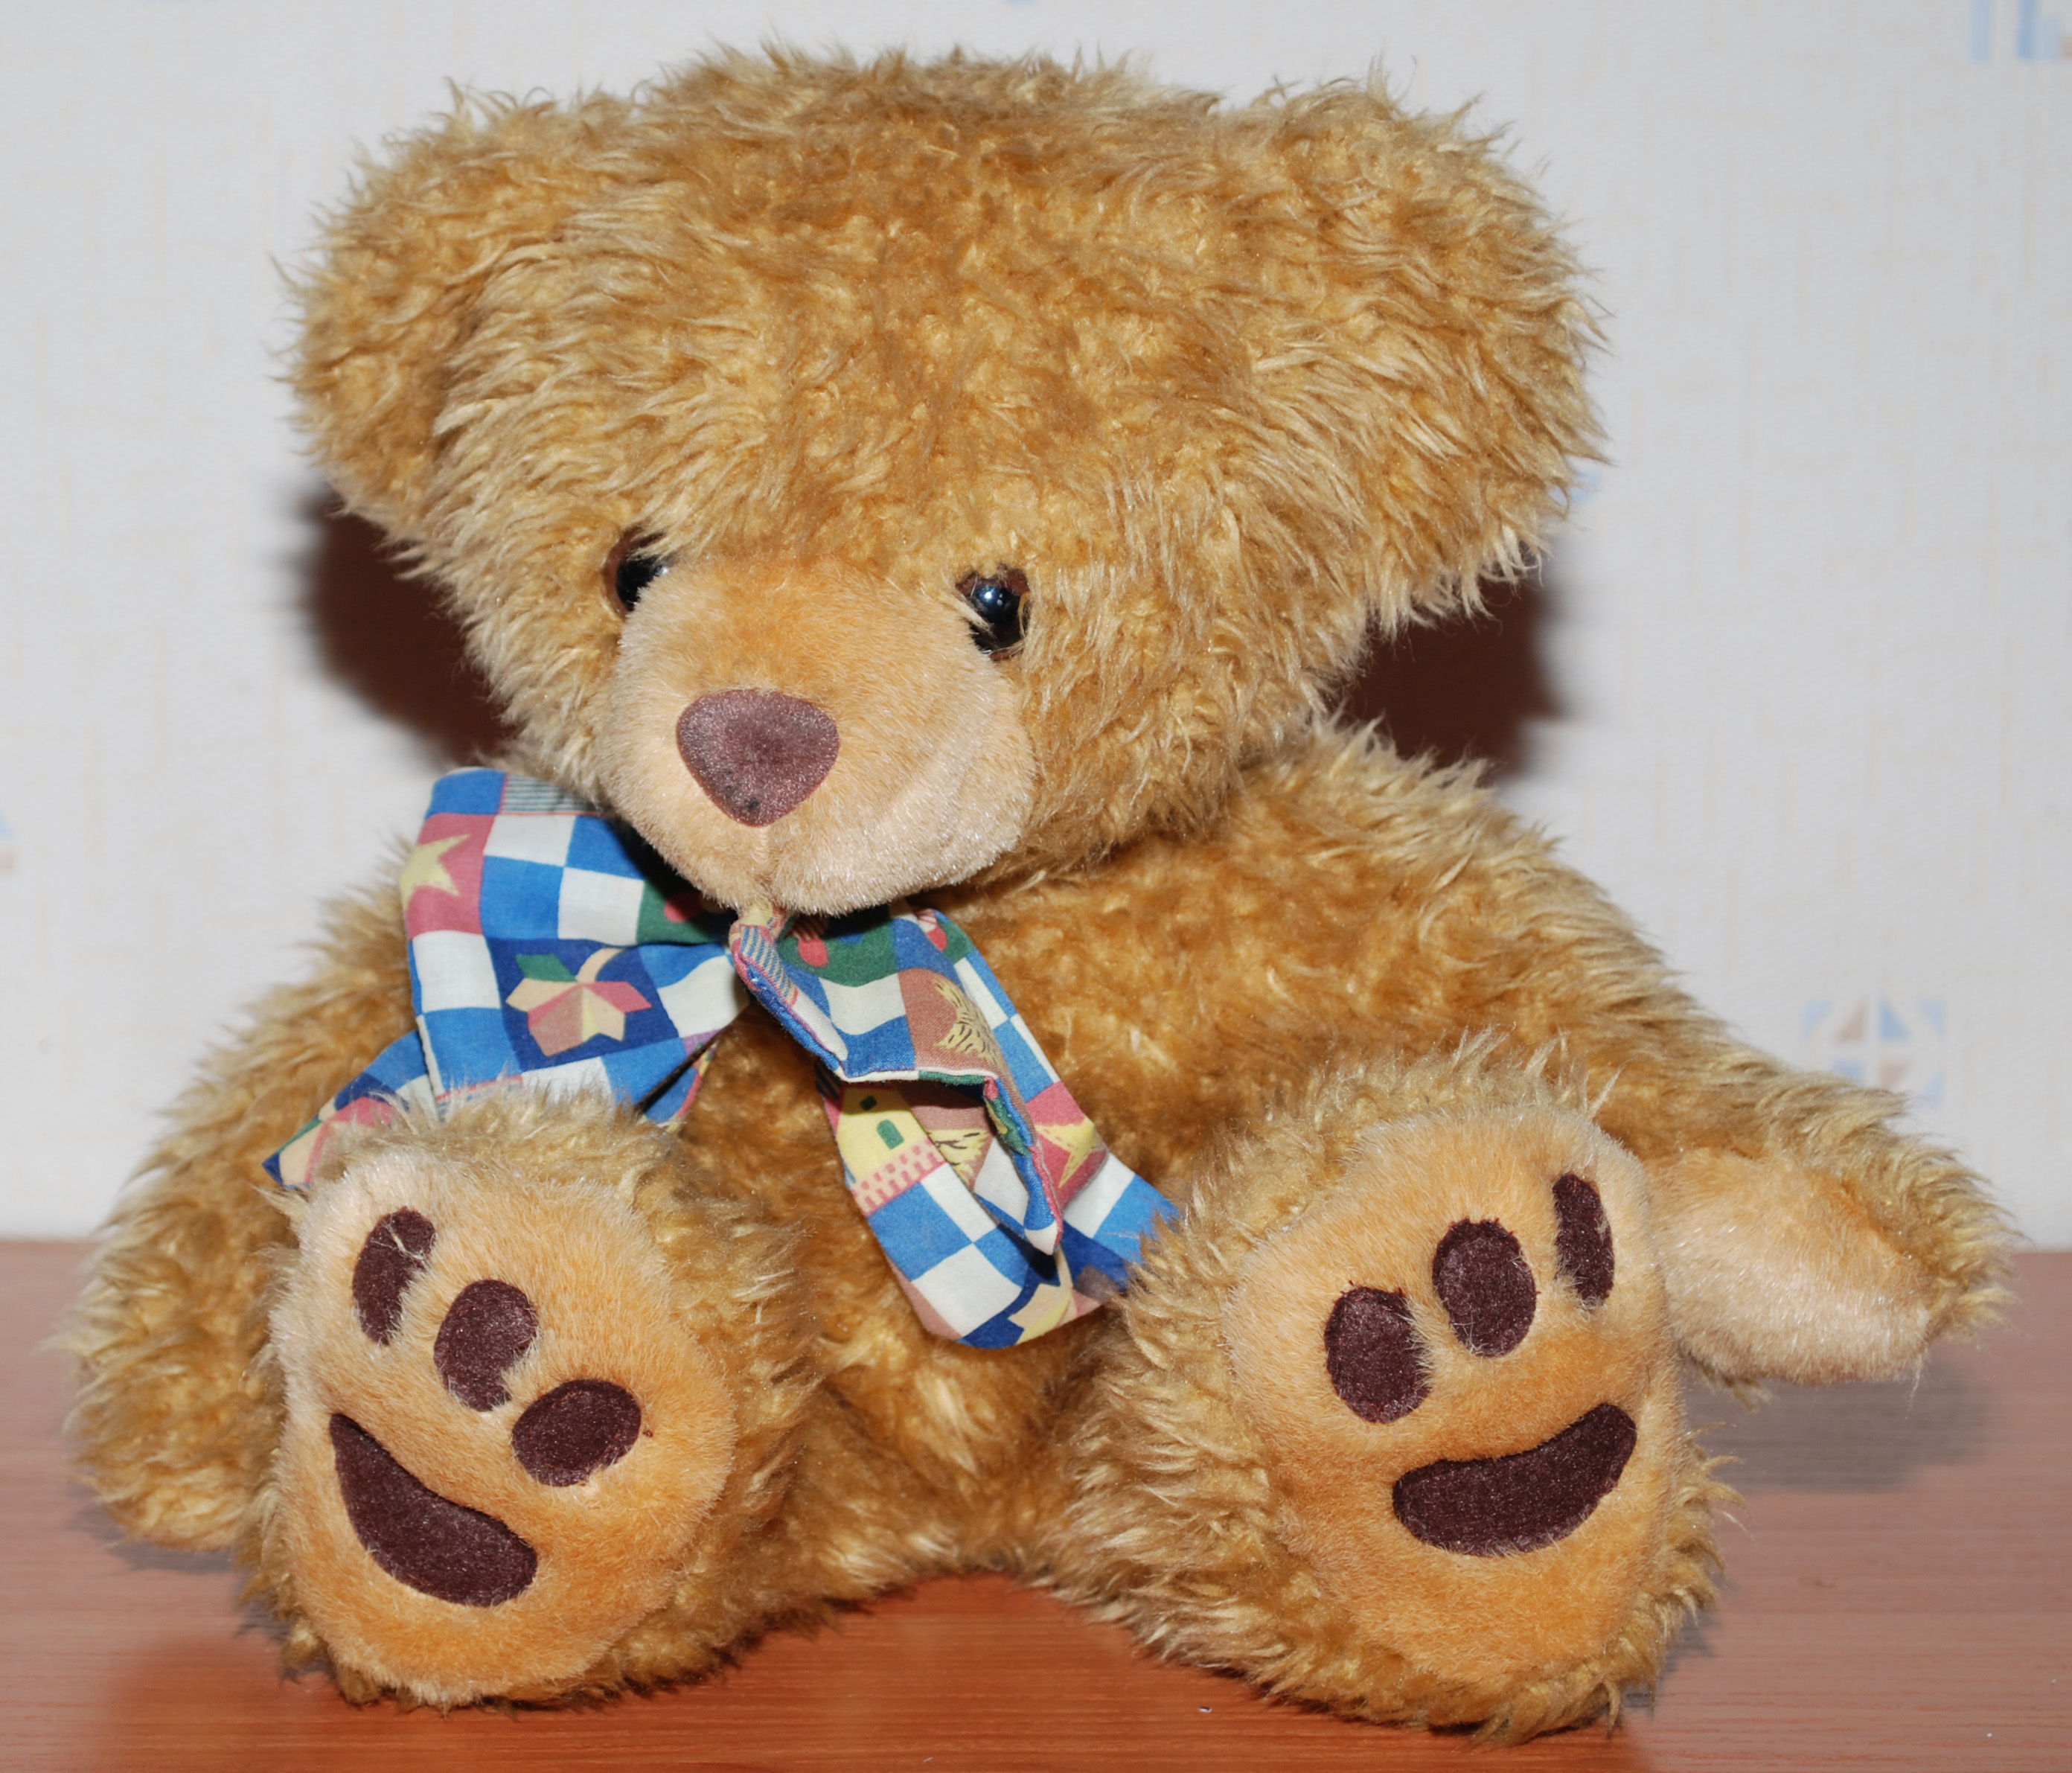 Archivo Teddy Bear Front Flash Jpg Wikipedia La Enciclopedia Libre Free site with personal ads for bears and fans of hairy bears. wikipedia